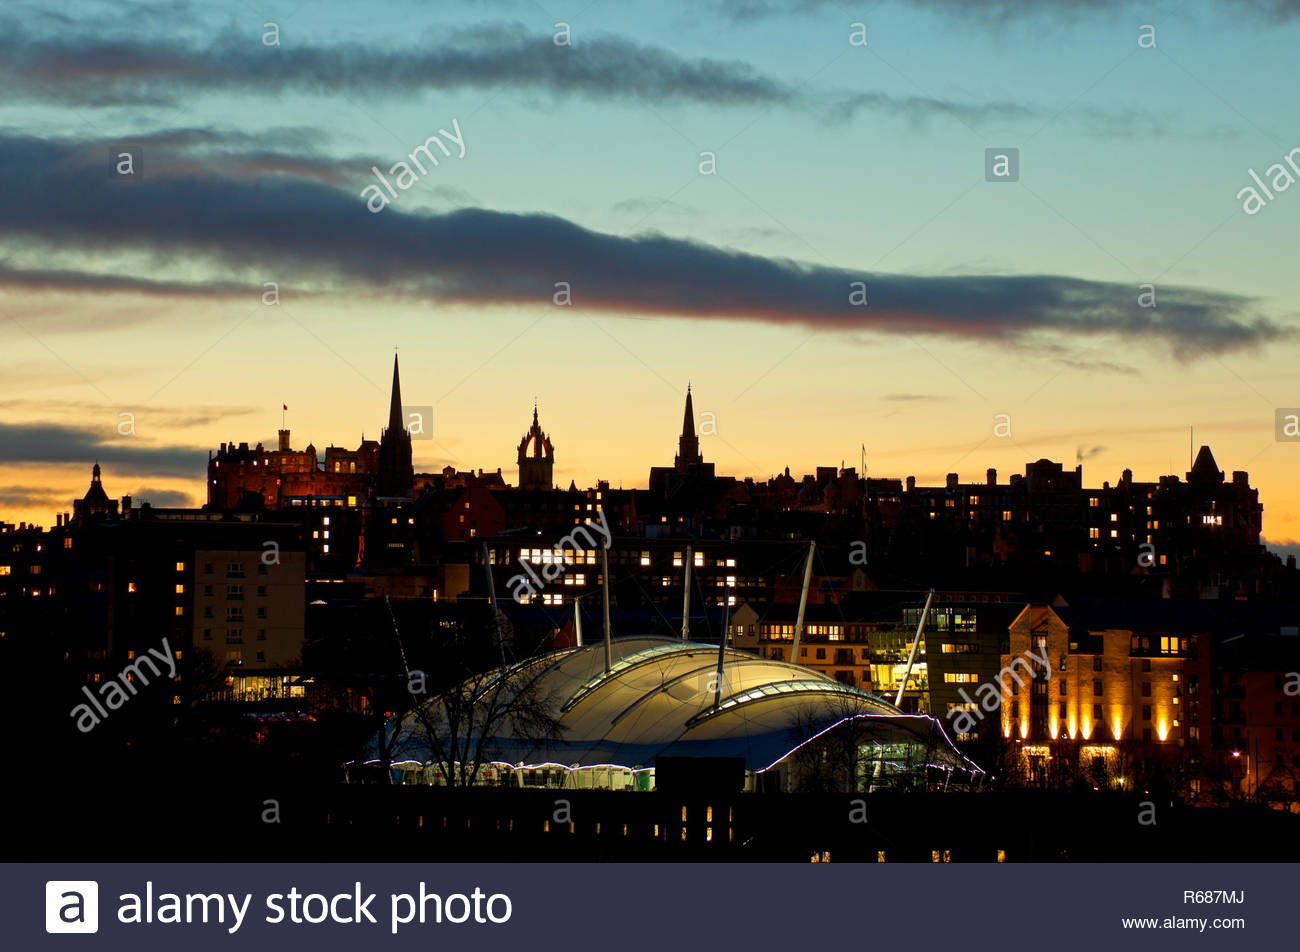 Edinburgh, Scotland, UK. 4th December 2018. Weather, sunset over the city centre of the Scottish capital with chilly temperature of 3 degrees expected to drop to minus one overnight, Dynamic Earth in the foreground and the castle, Hub and St Giles Cathedral in the background. Stock Photo